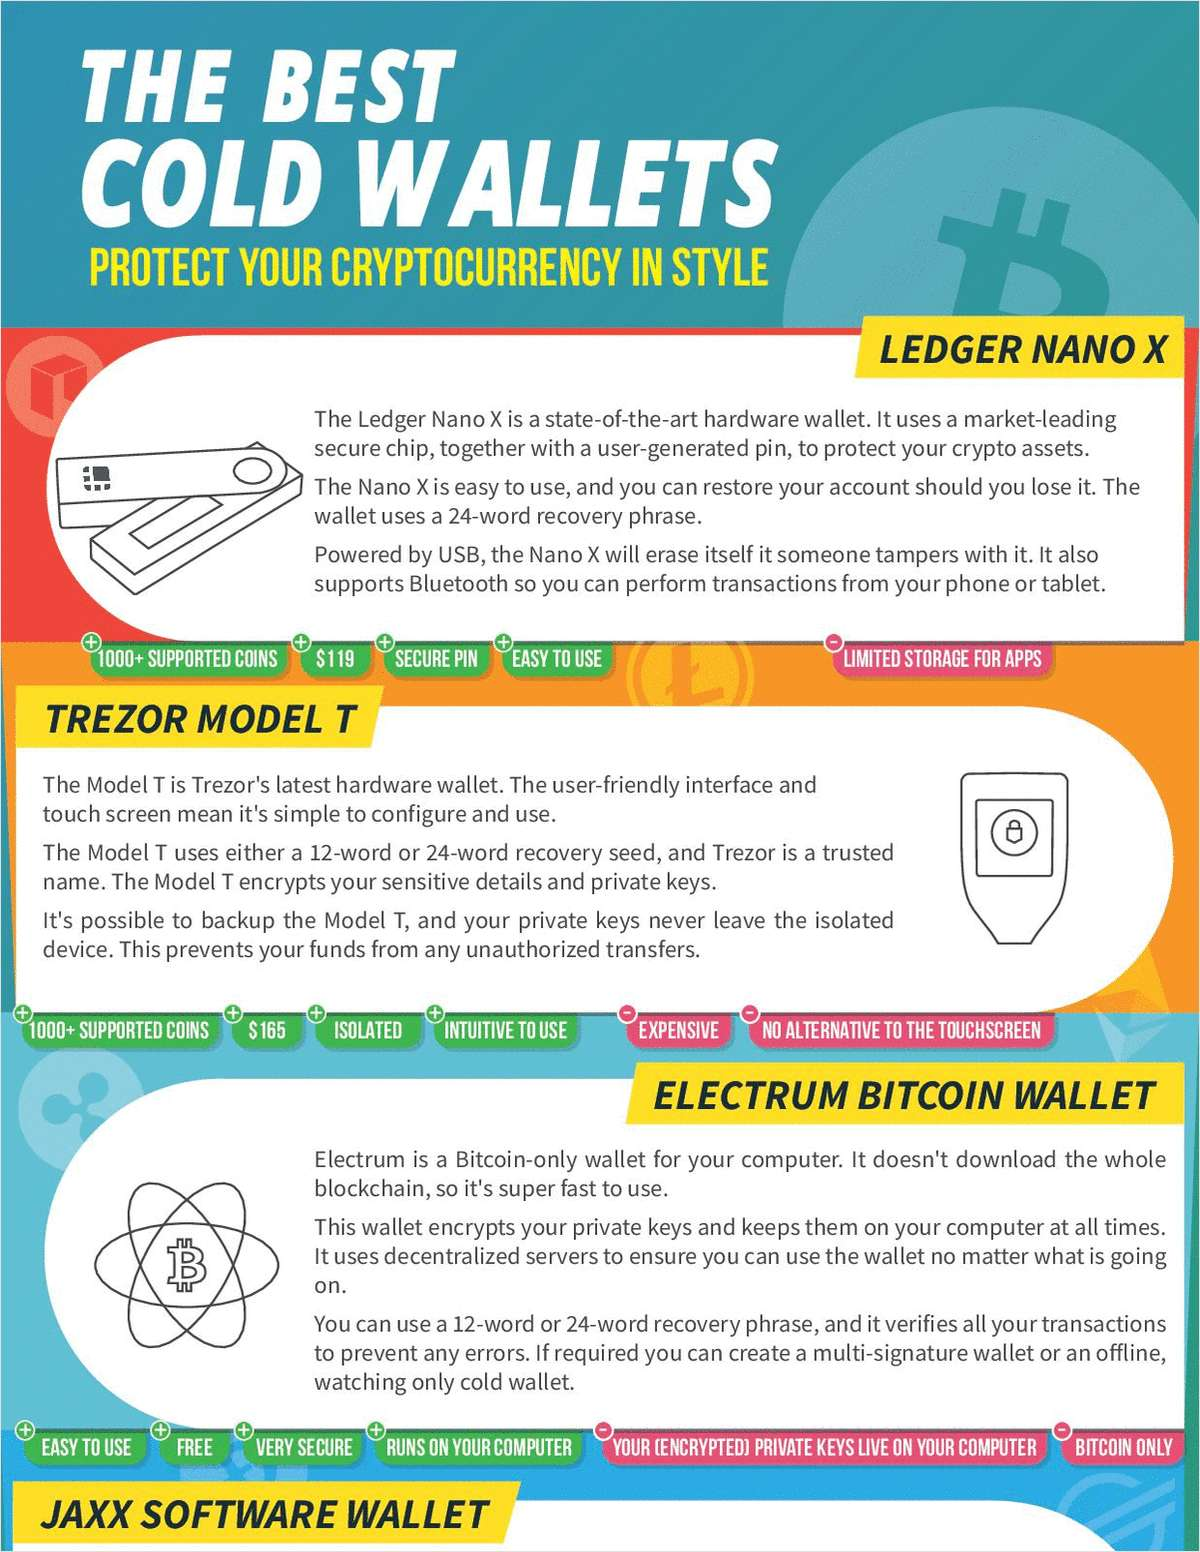 The Best Cold Wallets on the Market